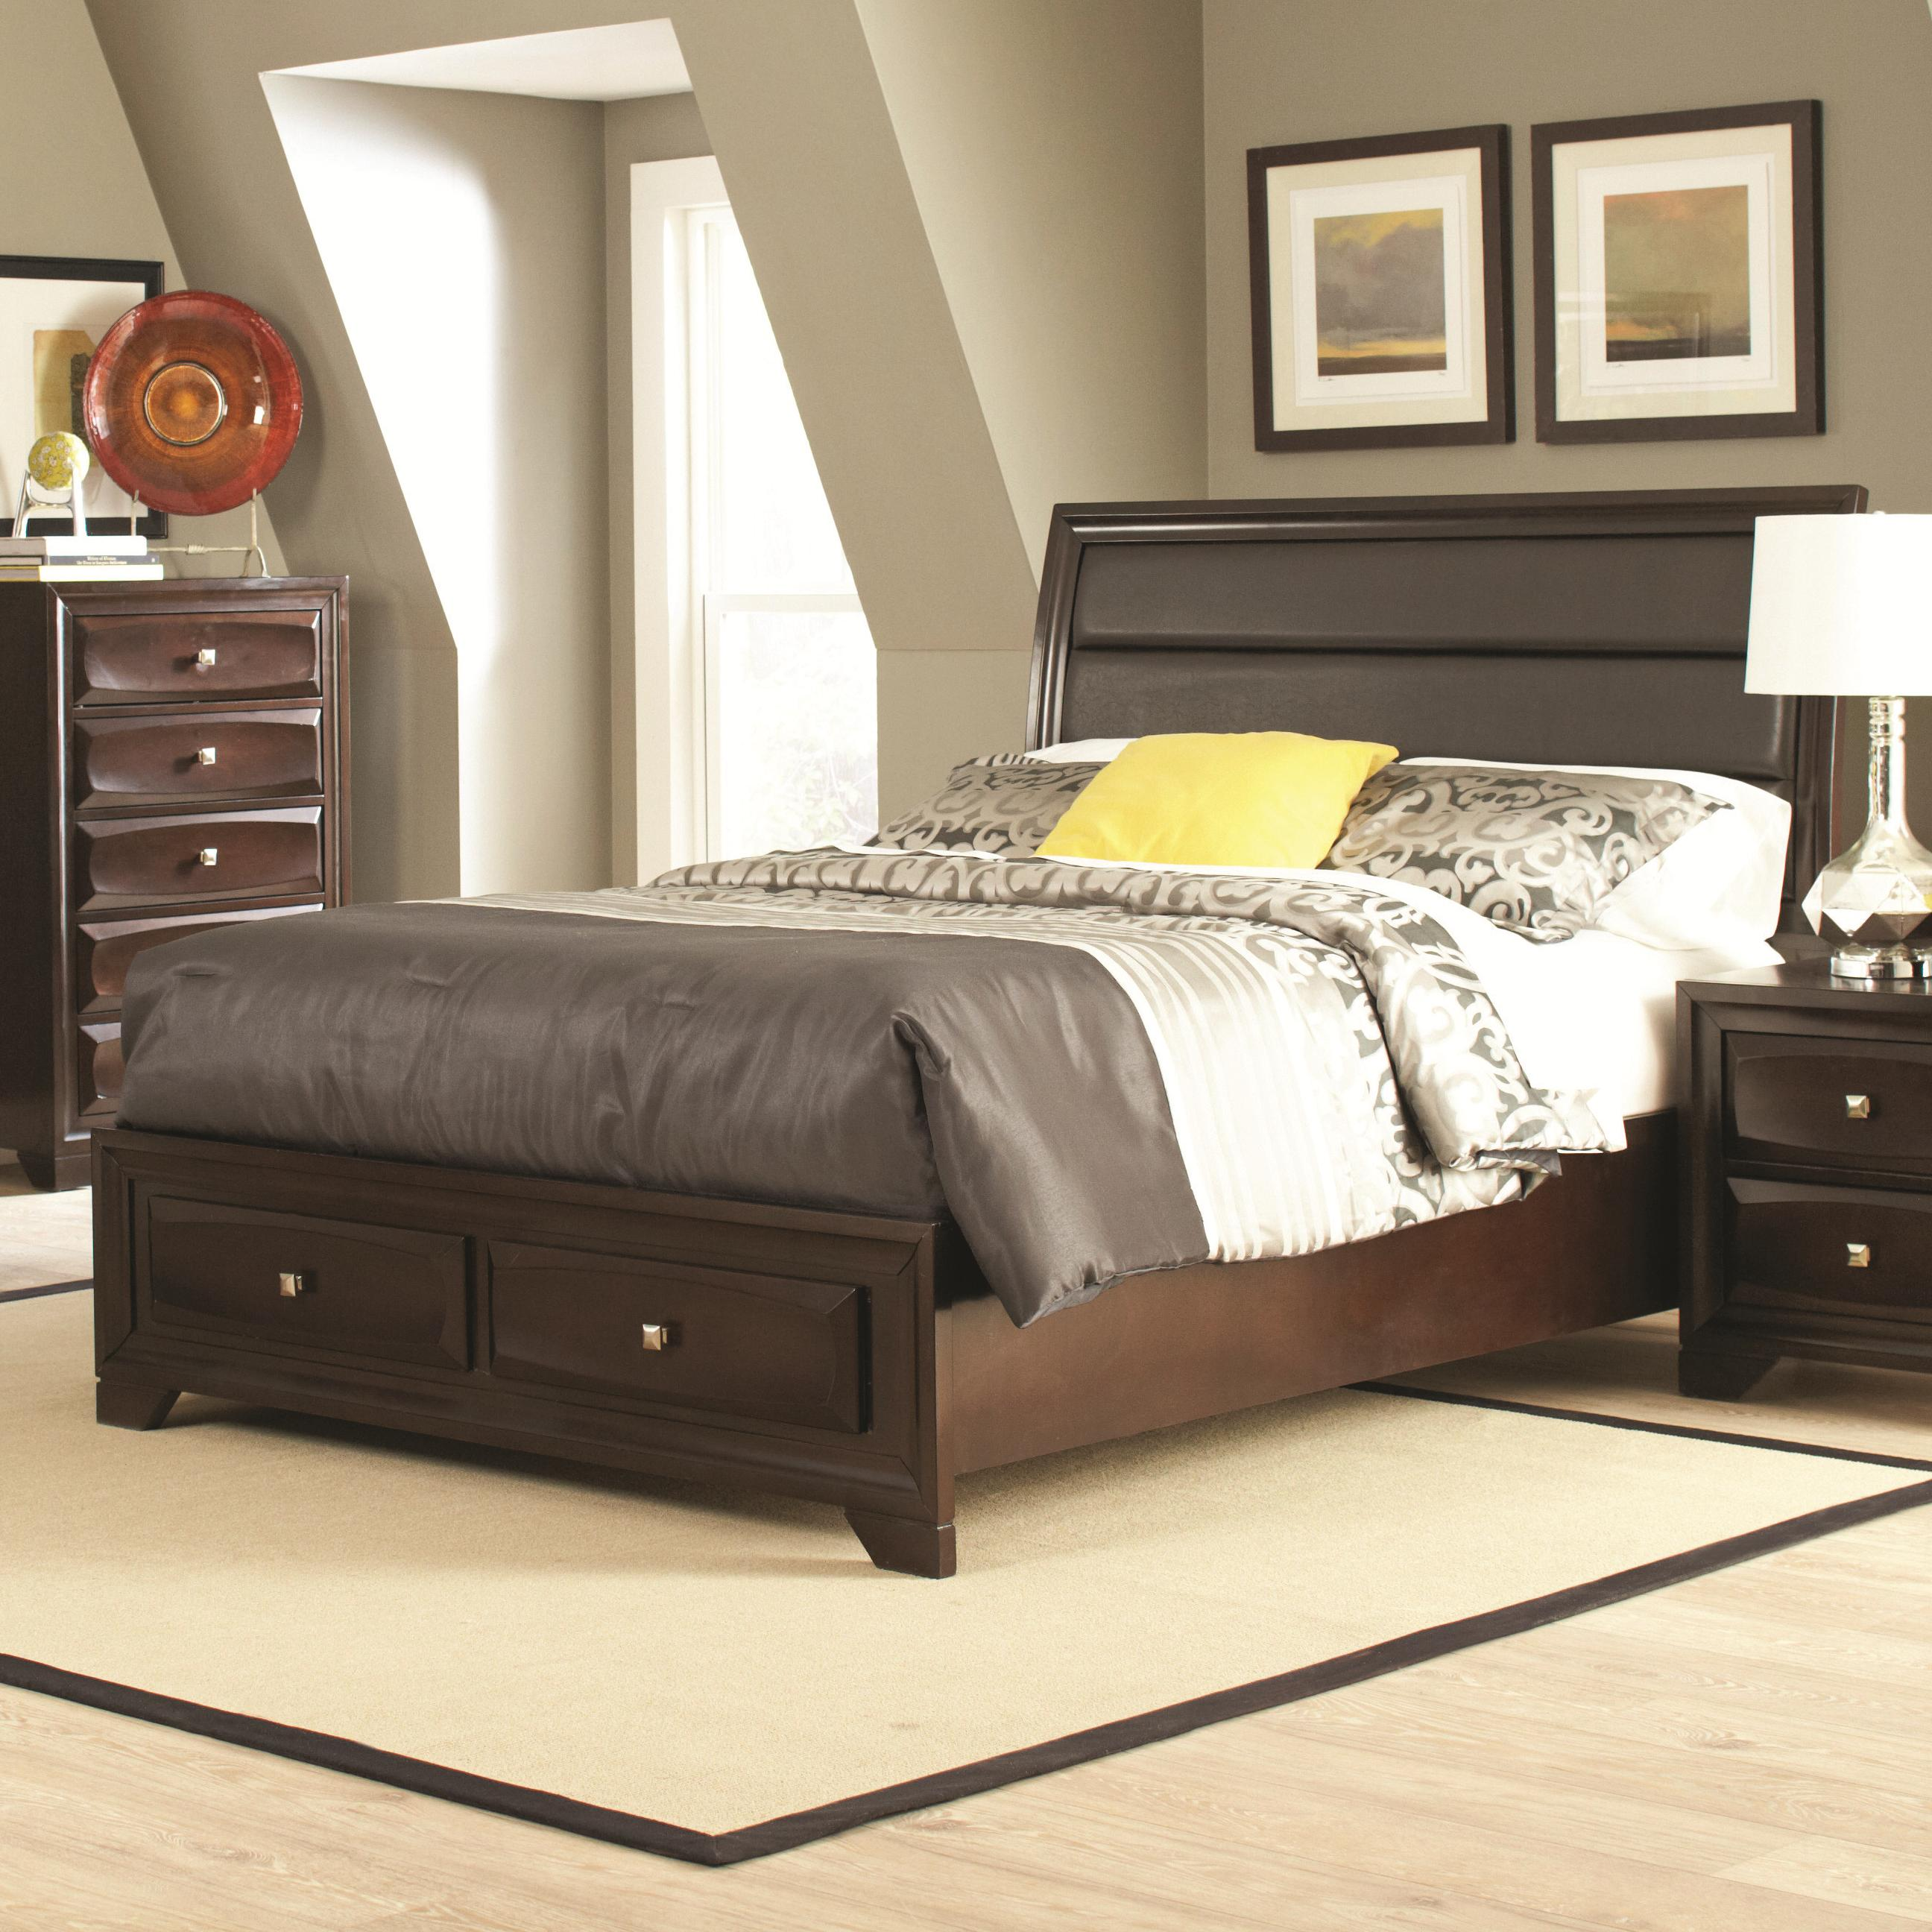 Jaxson Queen Bed by Coaster at Northeast Factory Direct